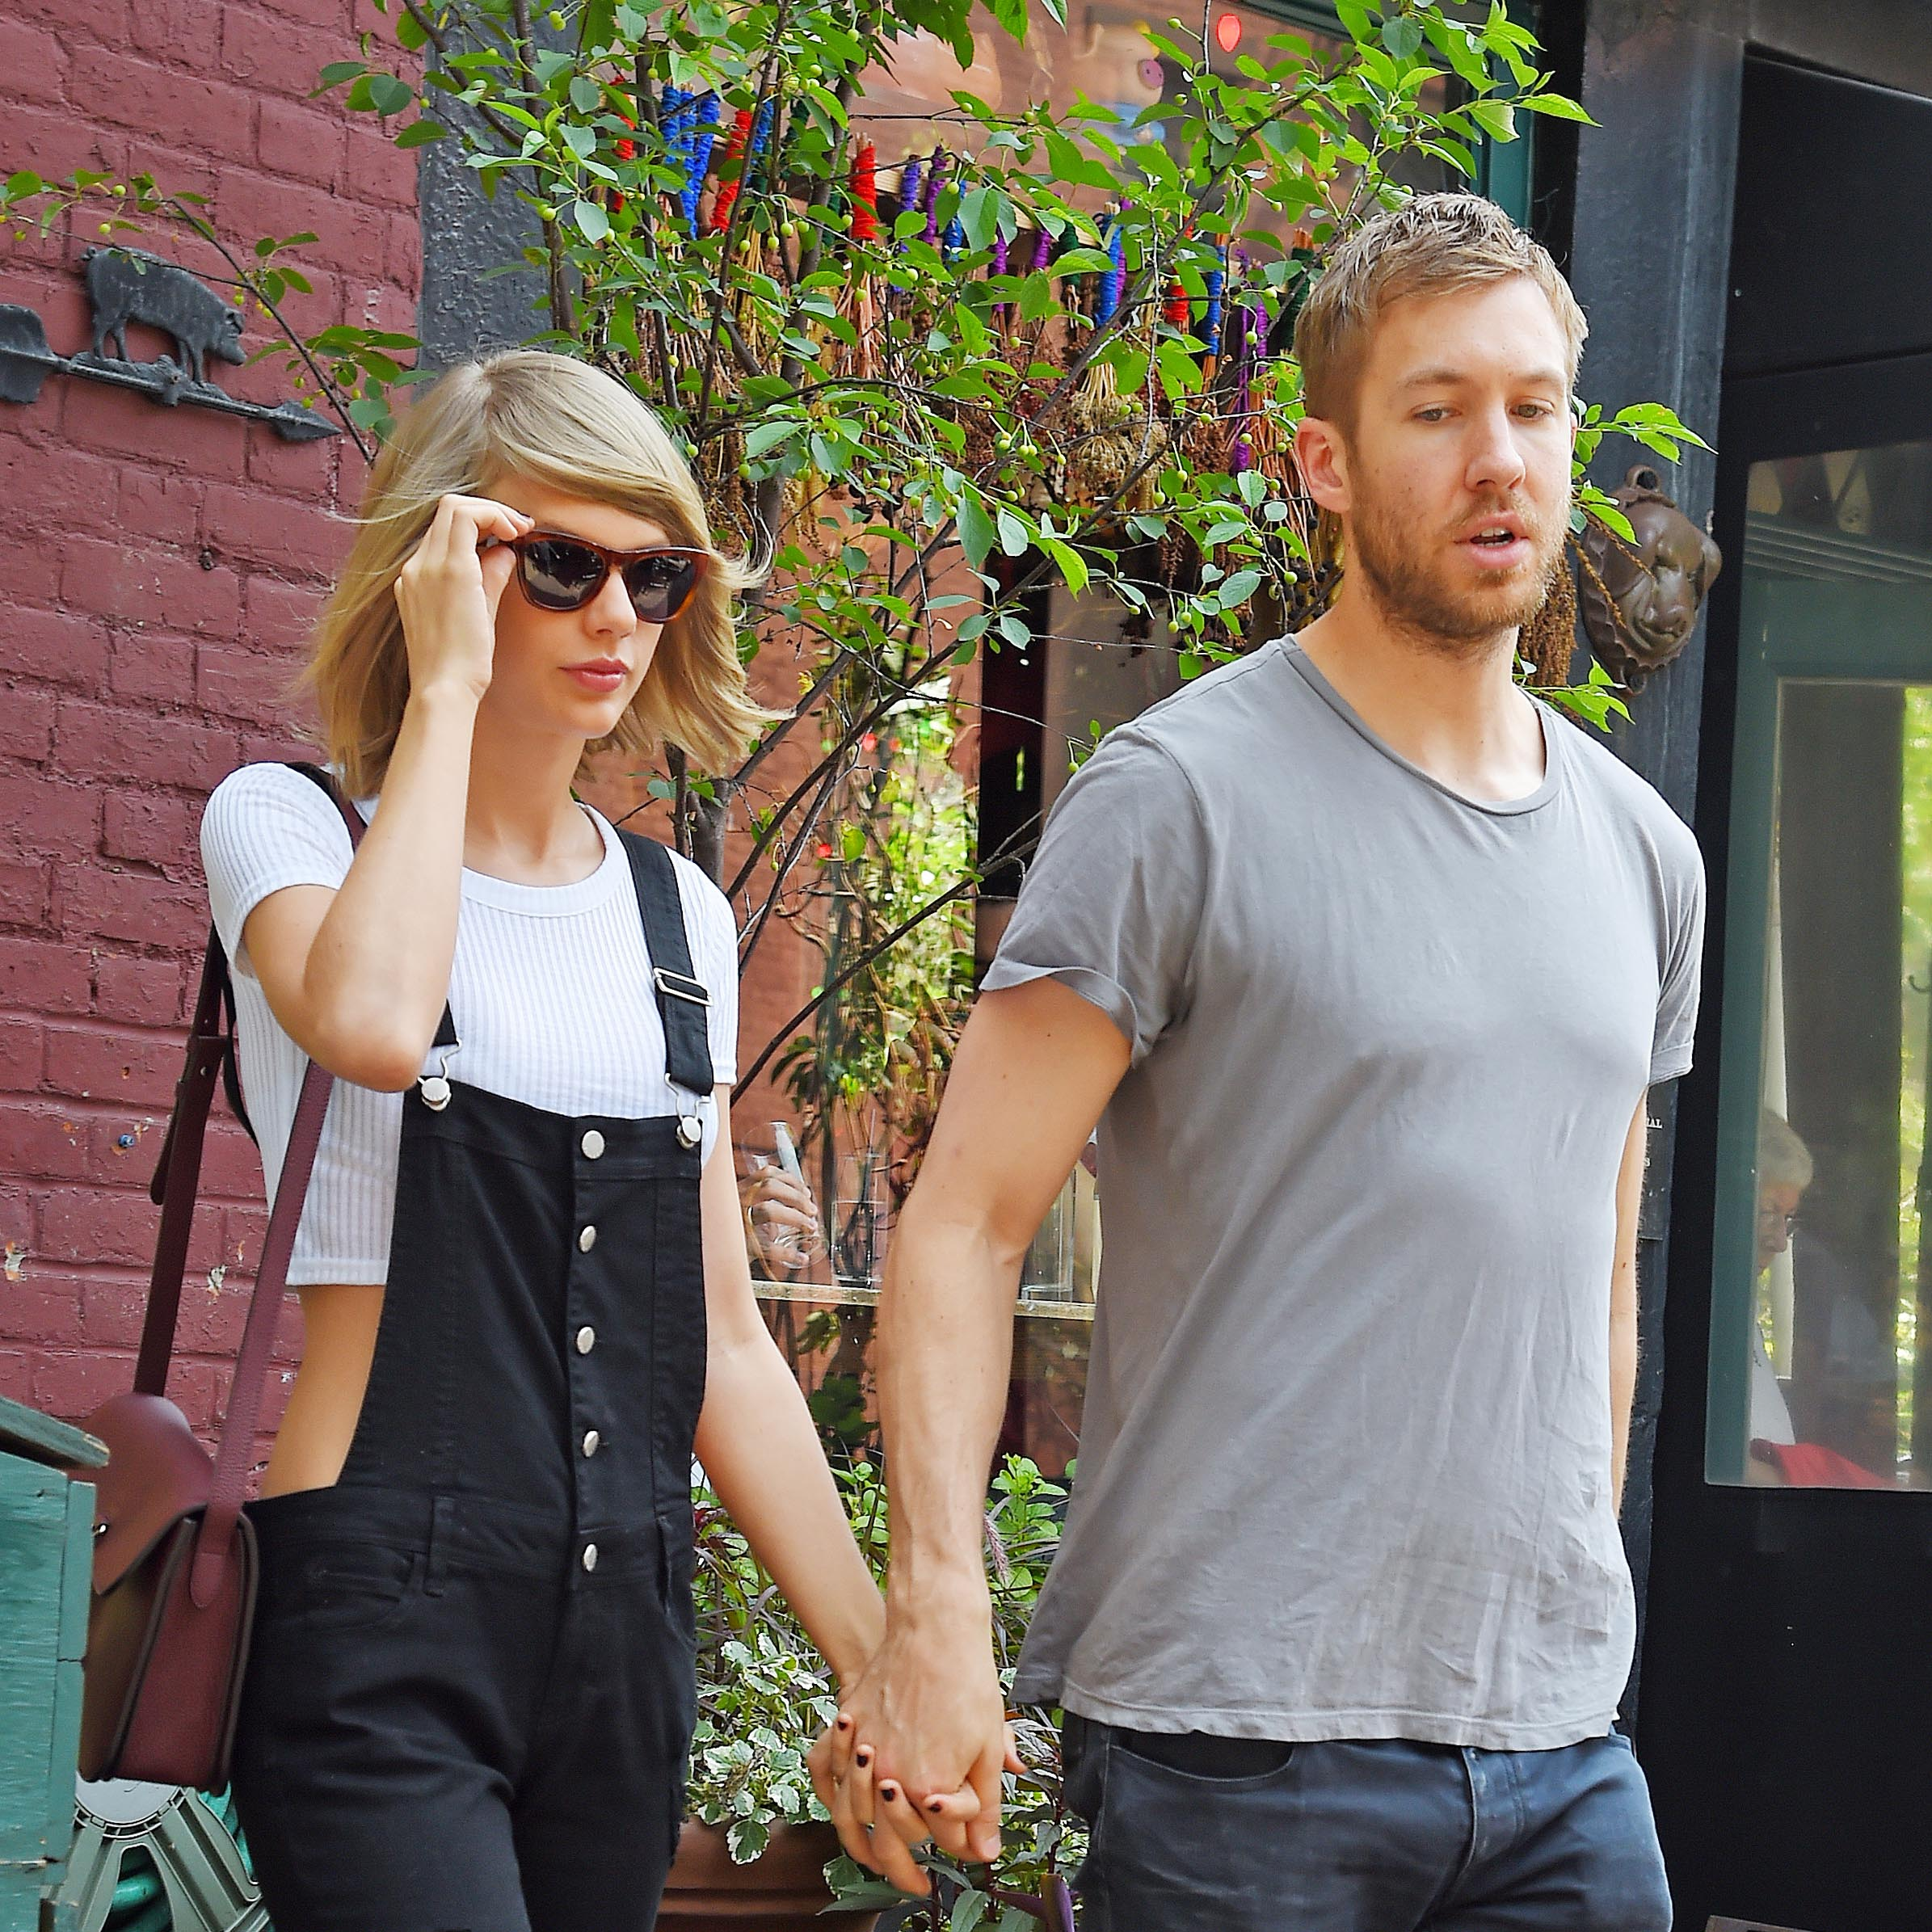 Taylor Swift and Calvin Harris get lunch at the Spotted Pig on May 28, 2015 in New York, New York.